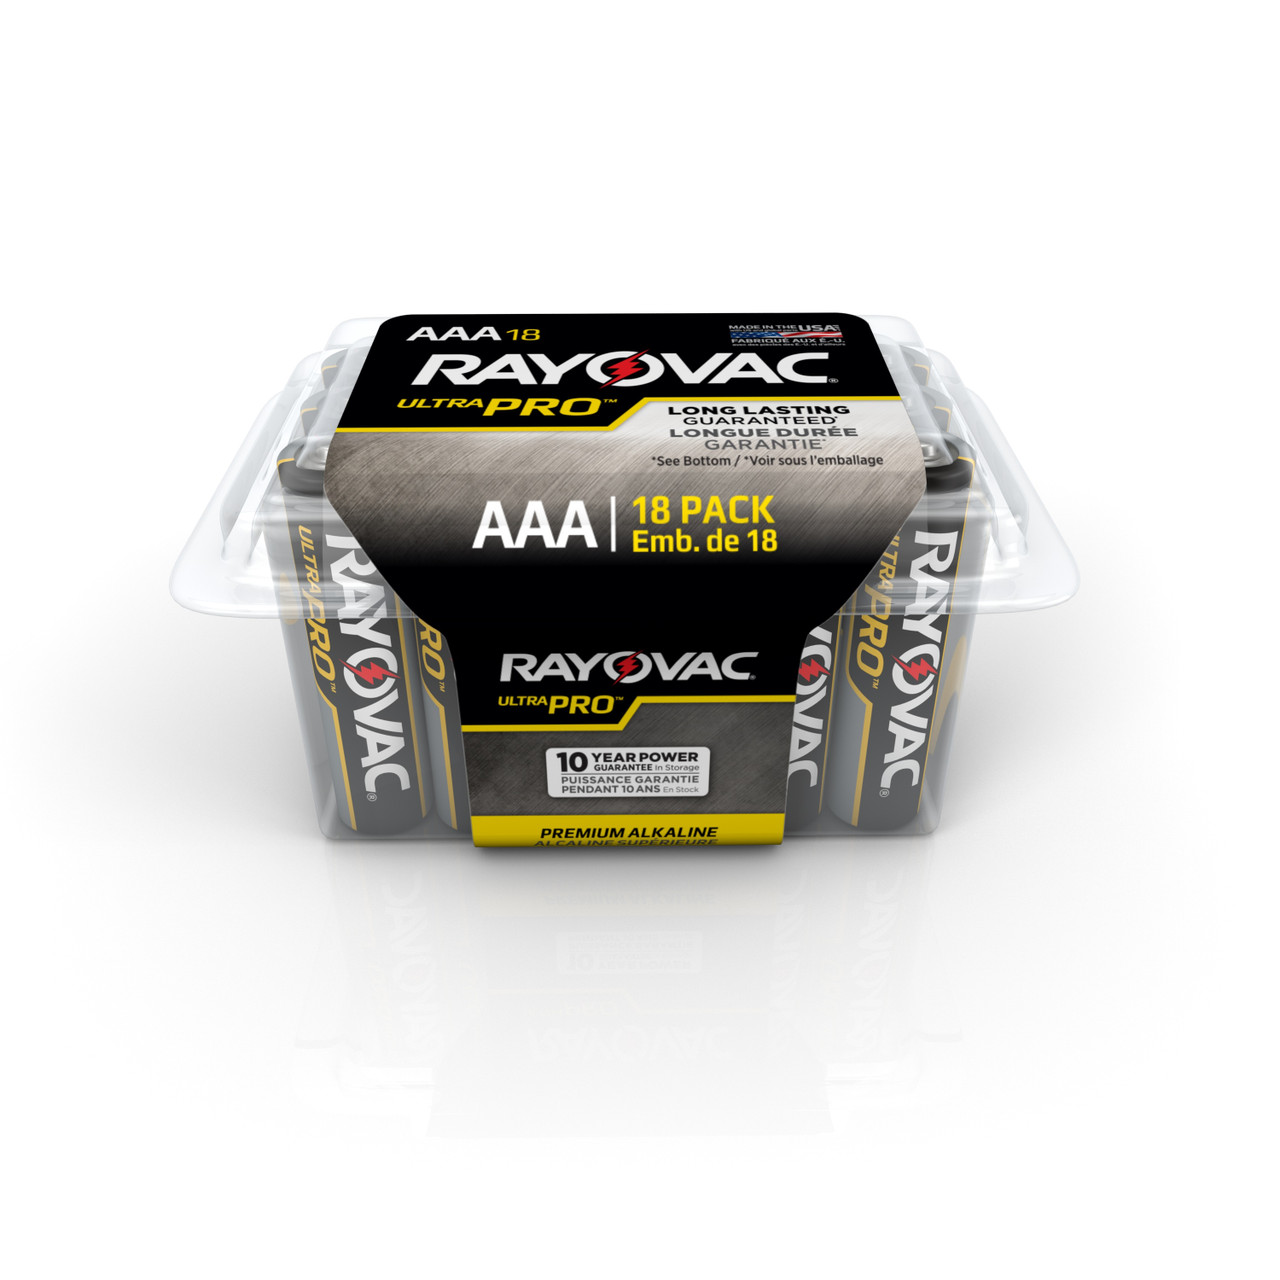 Energizer-Rayovac AAA Battery 18 Pack EDP: AAA